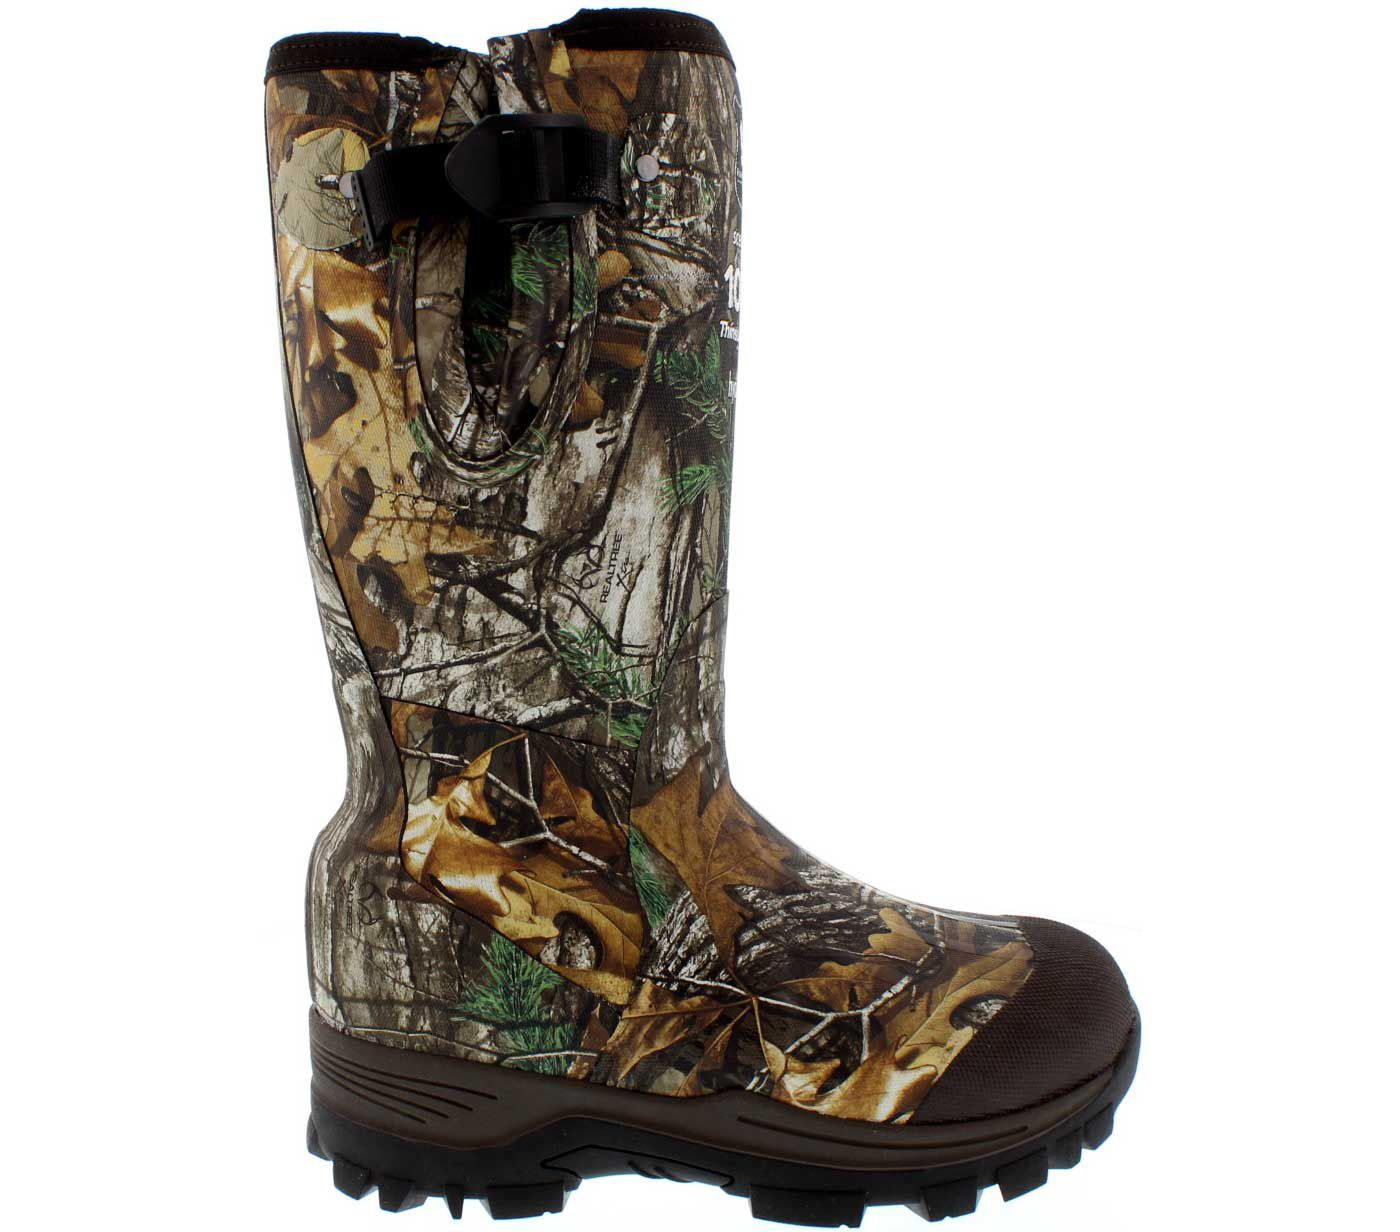 Field & Stream Women's Swamptracker Uninsulated Rubber Hunting Boots